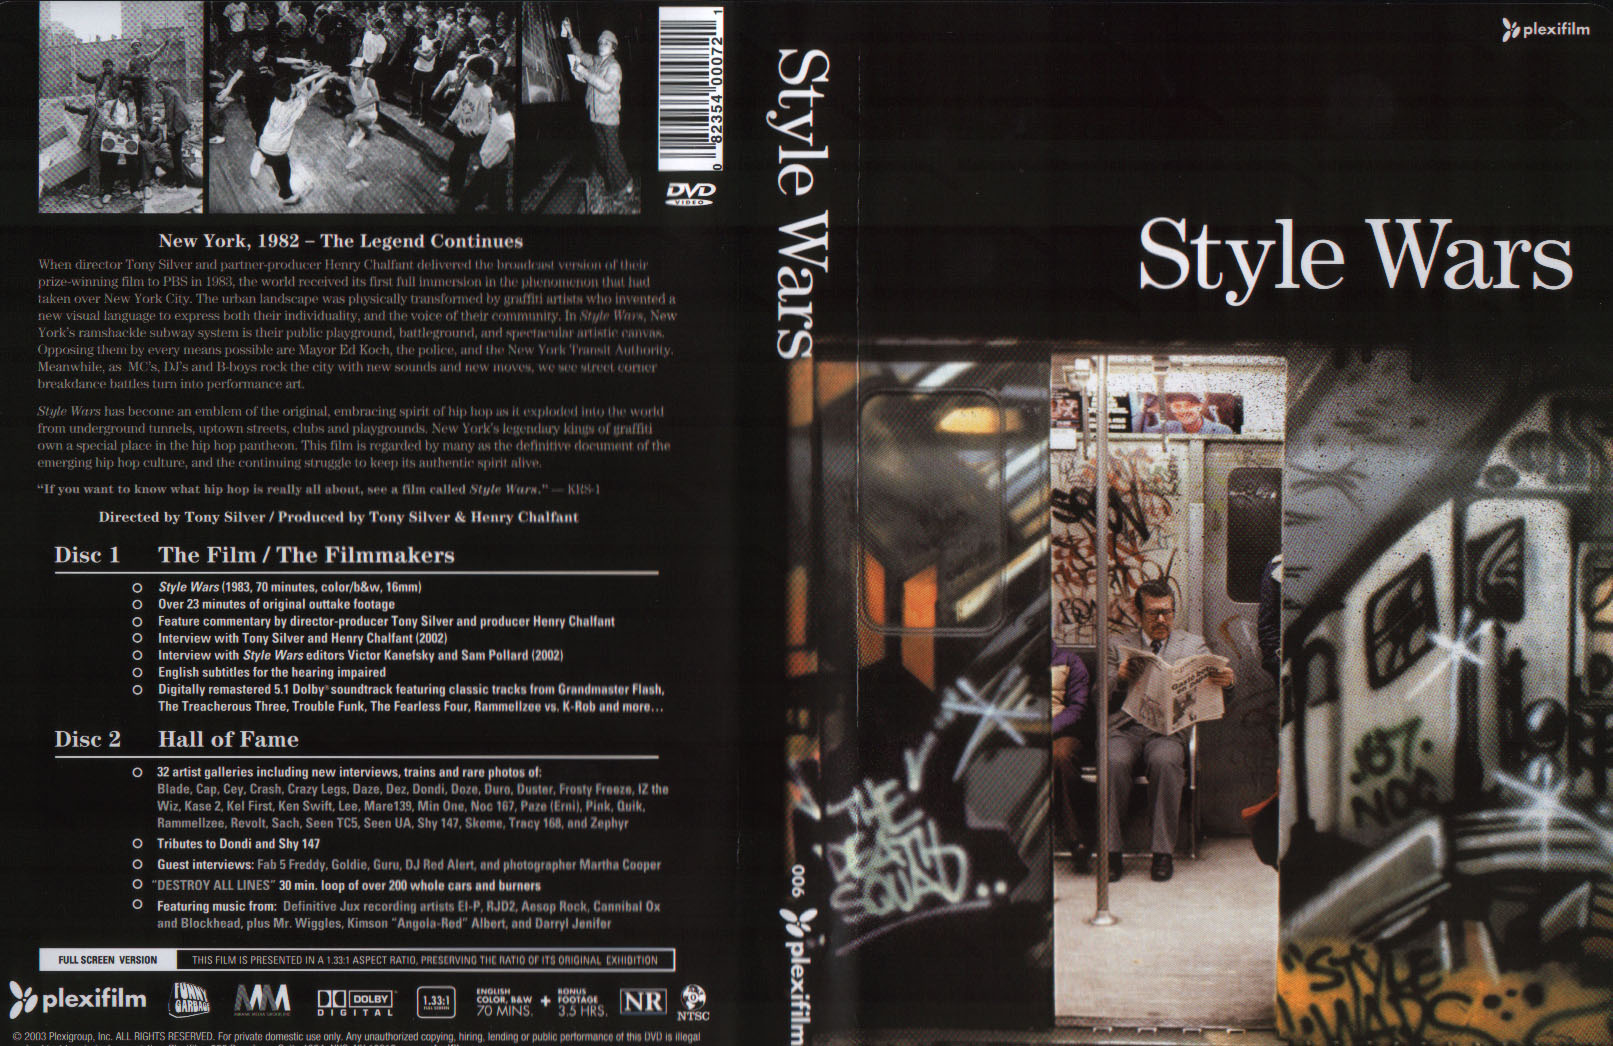 Style wars DVD Cover.jpg